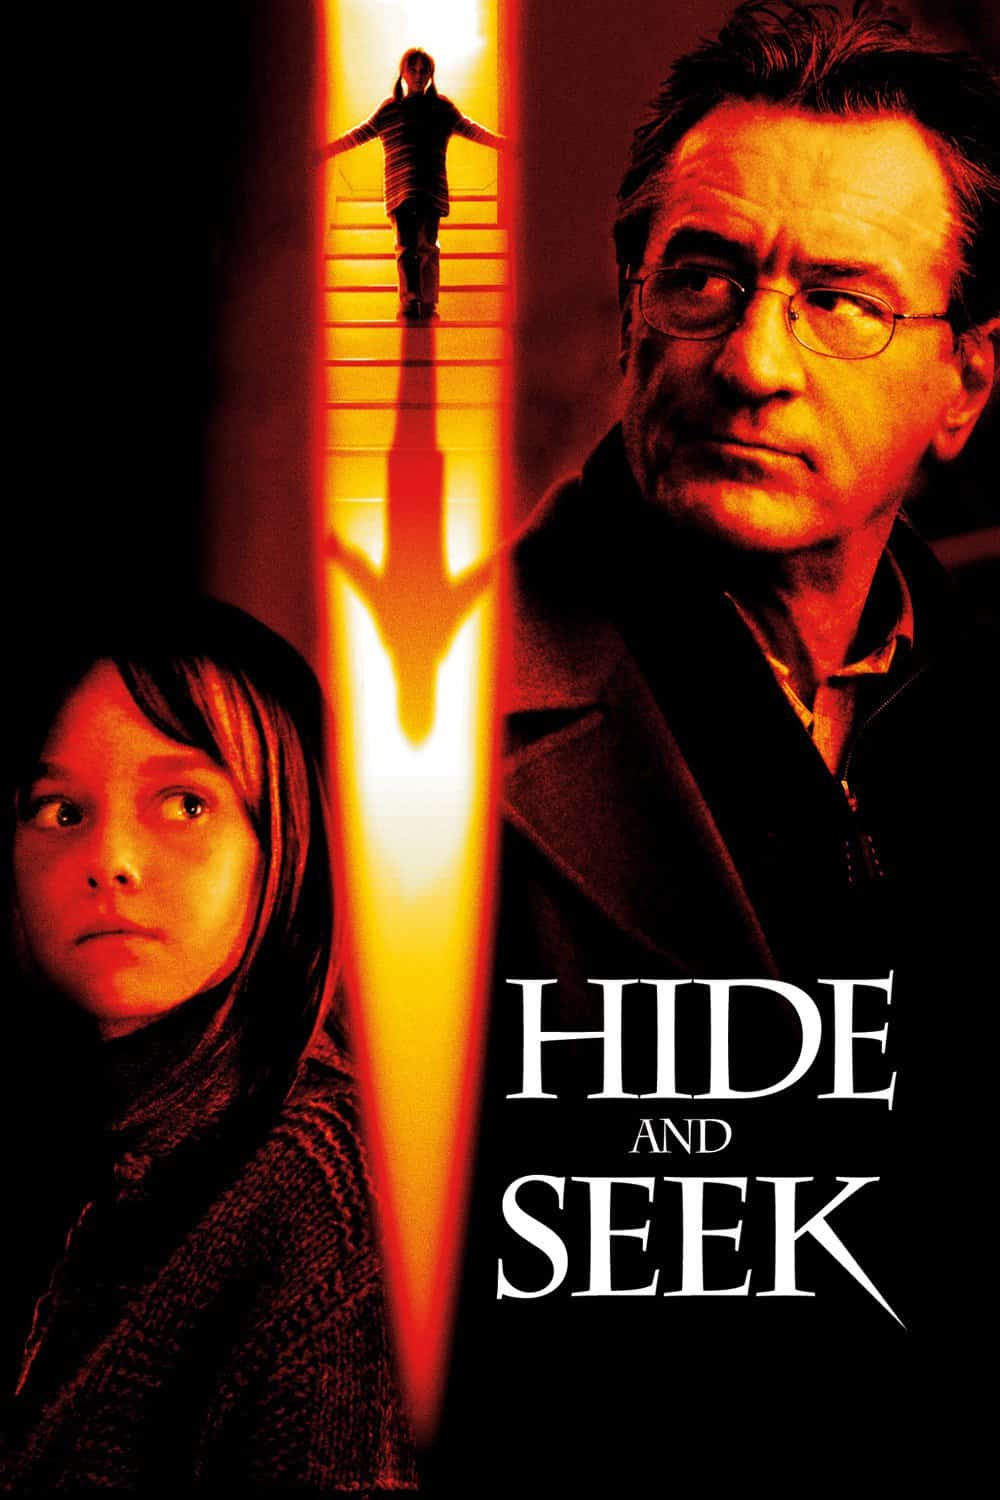 Hide and Seek, 2005